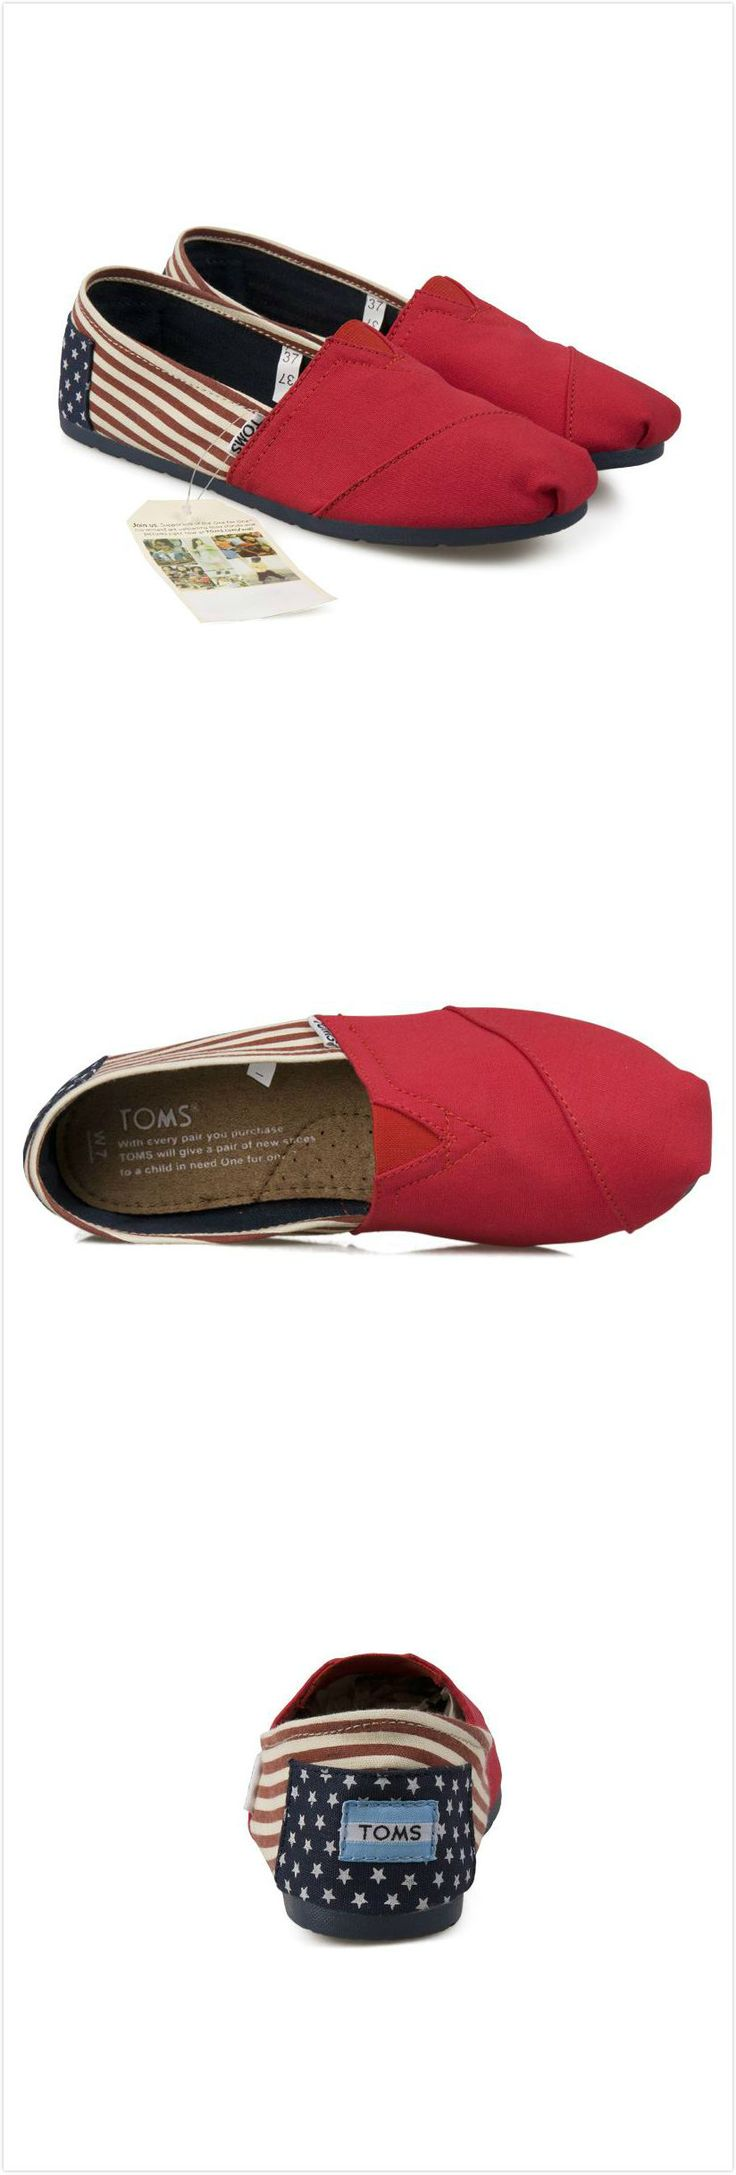 2013 Best selling Toms Shoes!  $16.89! #toms #shoes #fashion